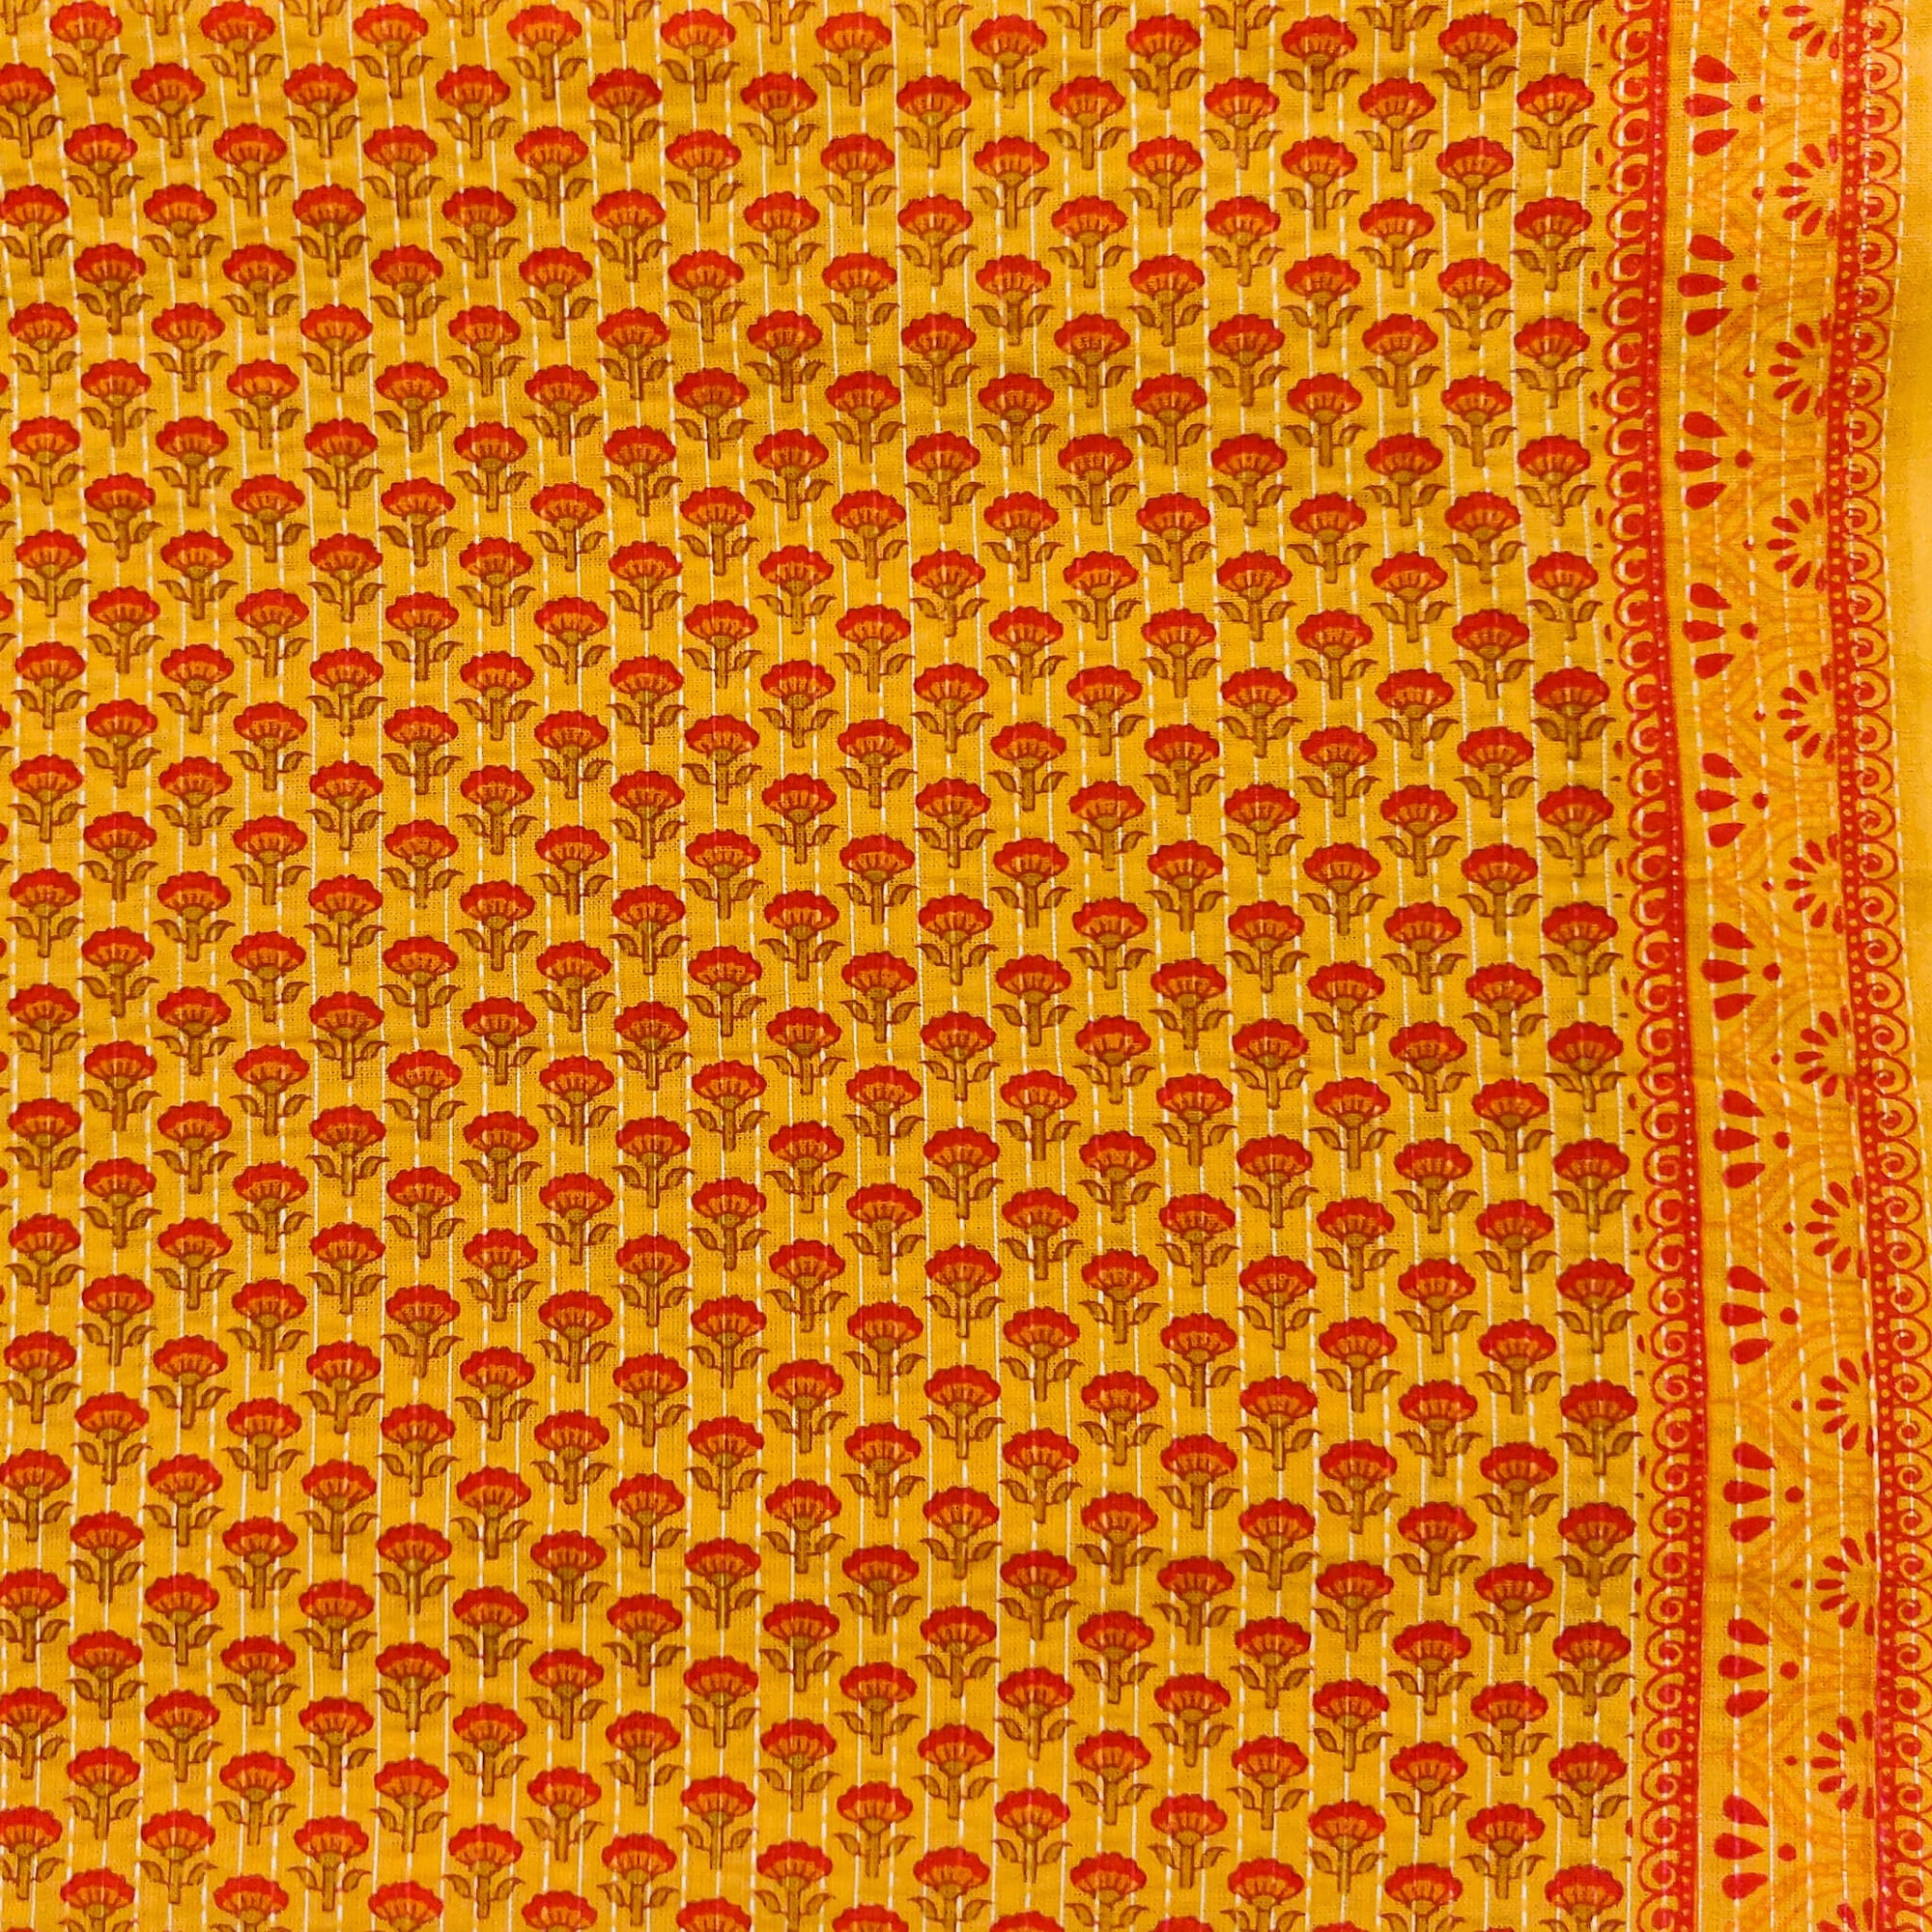 Pure Cotton Kaatha Orangish Mustard Yellow With Red Tiny Motifs Flower Hand Block Print Fabric